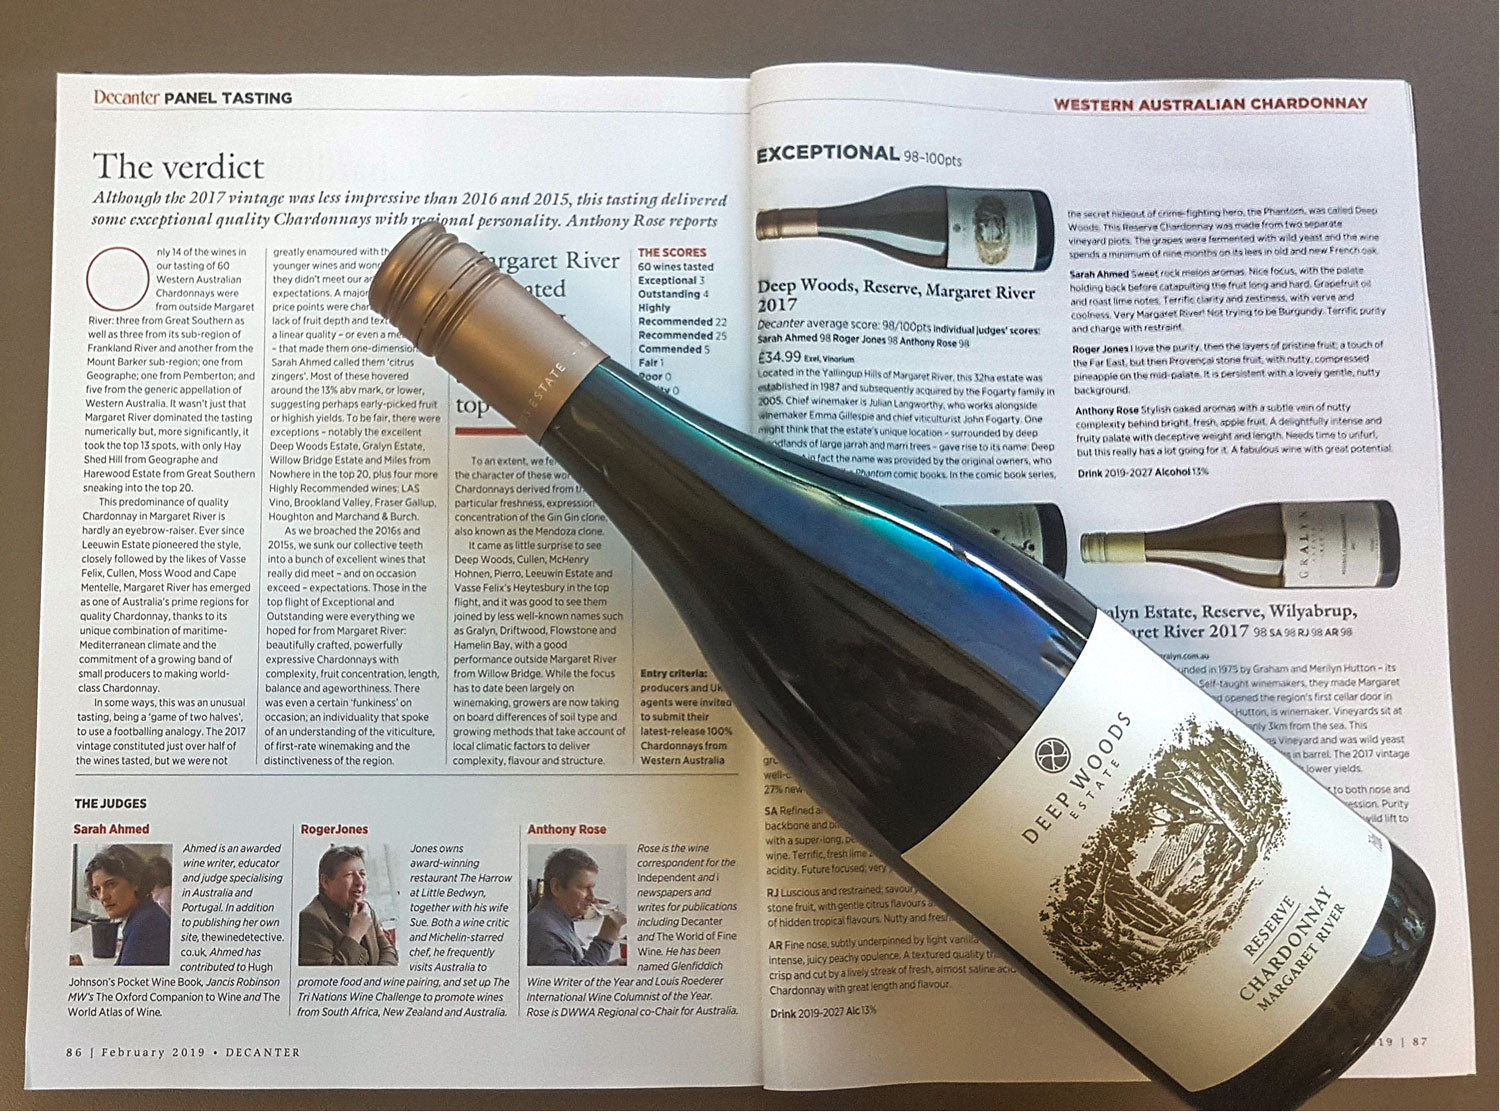 decanter magazine toasts an 'exceptional' chardonnay from deep woods